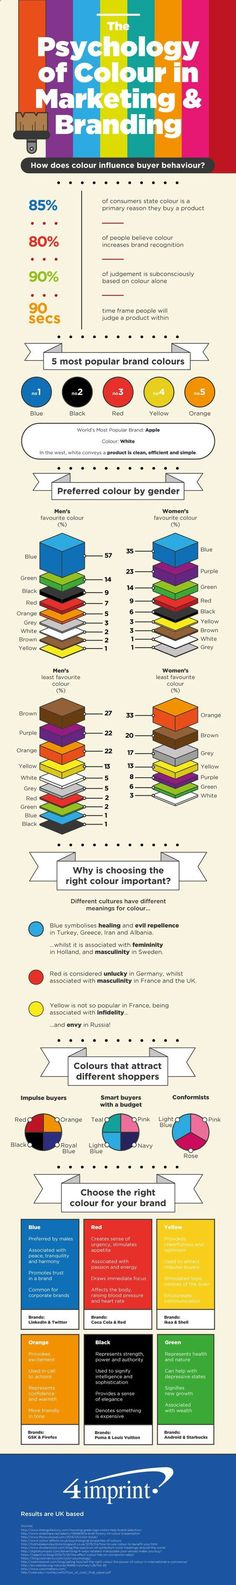 The Psychology of Colour in Marketing and Branding